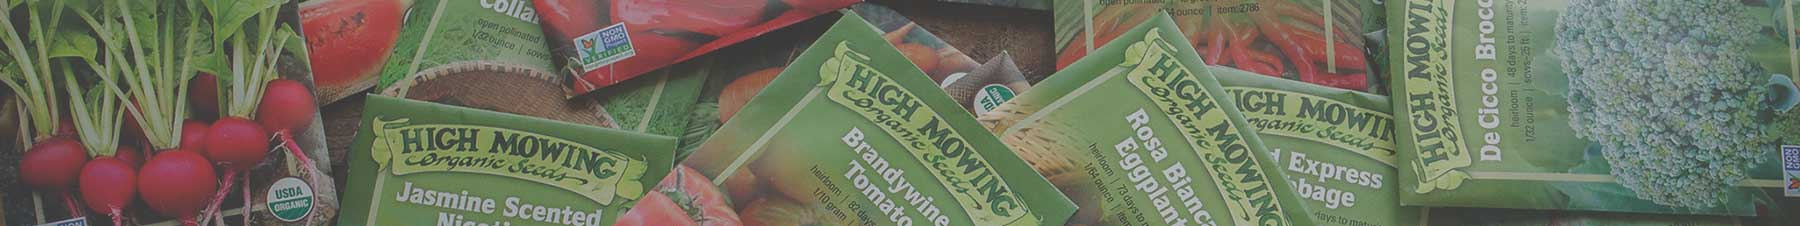 Organic Non-GMO Seed Packets for Wholesalers